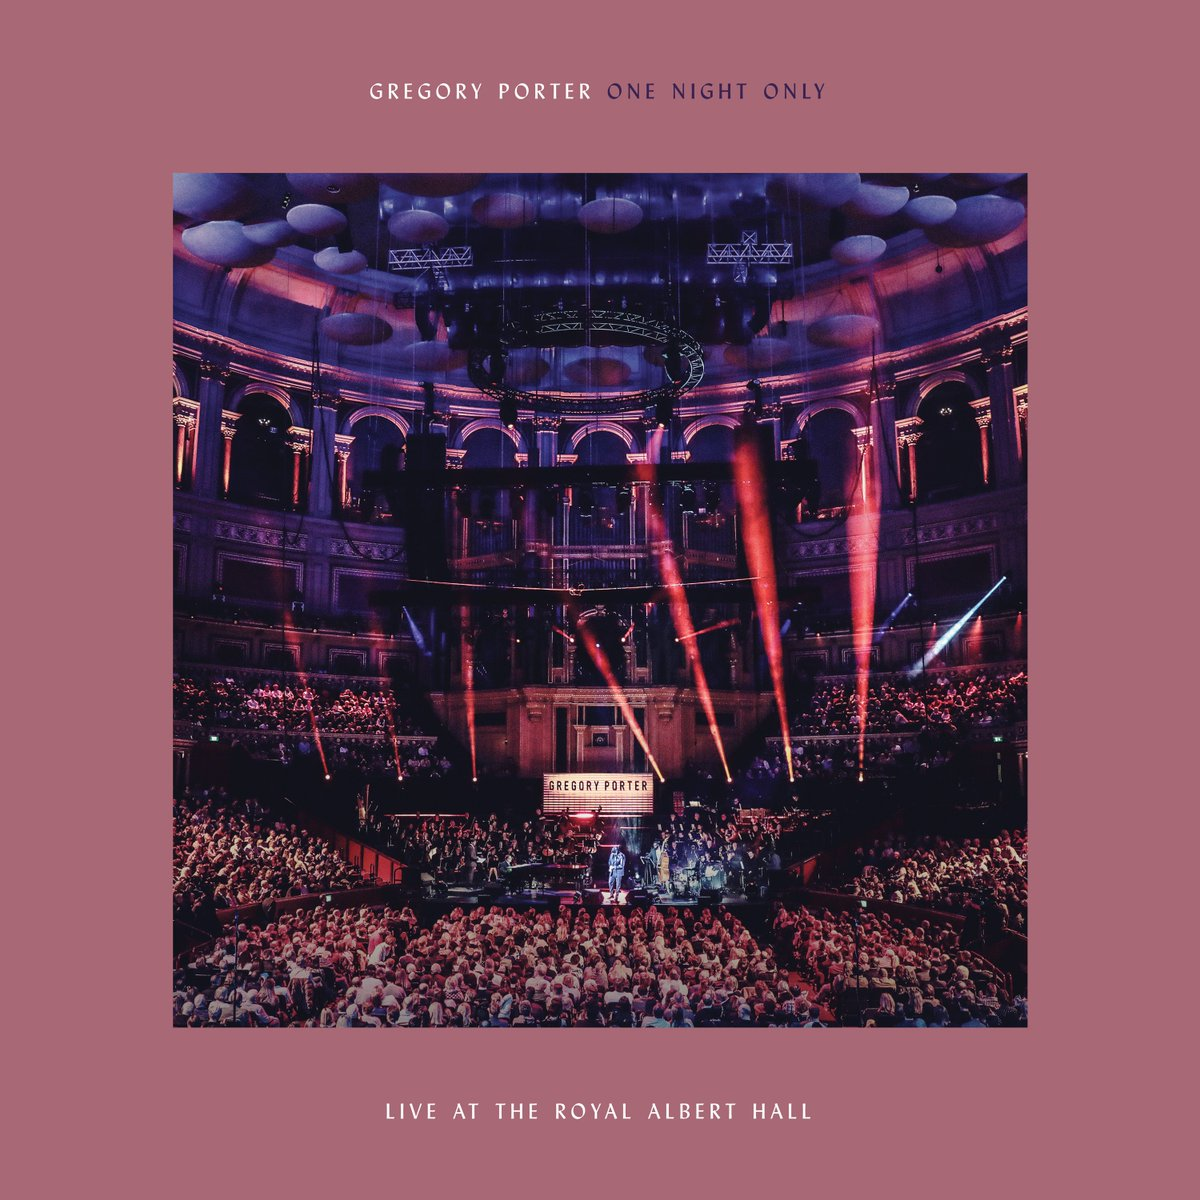 """GREGORY PORTER RELEASES FIRST EVER LIVE ALBUM & DVD Out on November 30th, pre-order/pre-save the album and listen to the first track """"I Wonder Who My Daddy Is"""" : http://GregoryPorter.lnk.to/ONOTP Check out the live performance : http://GregoryPorter.lnk.to/IWonderVideoTP"""